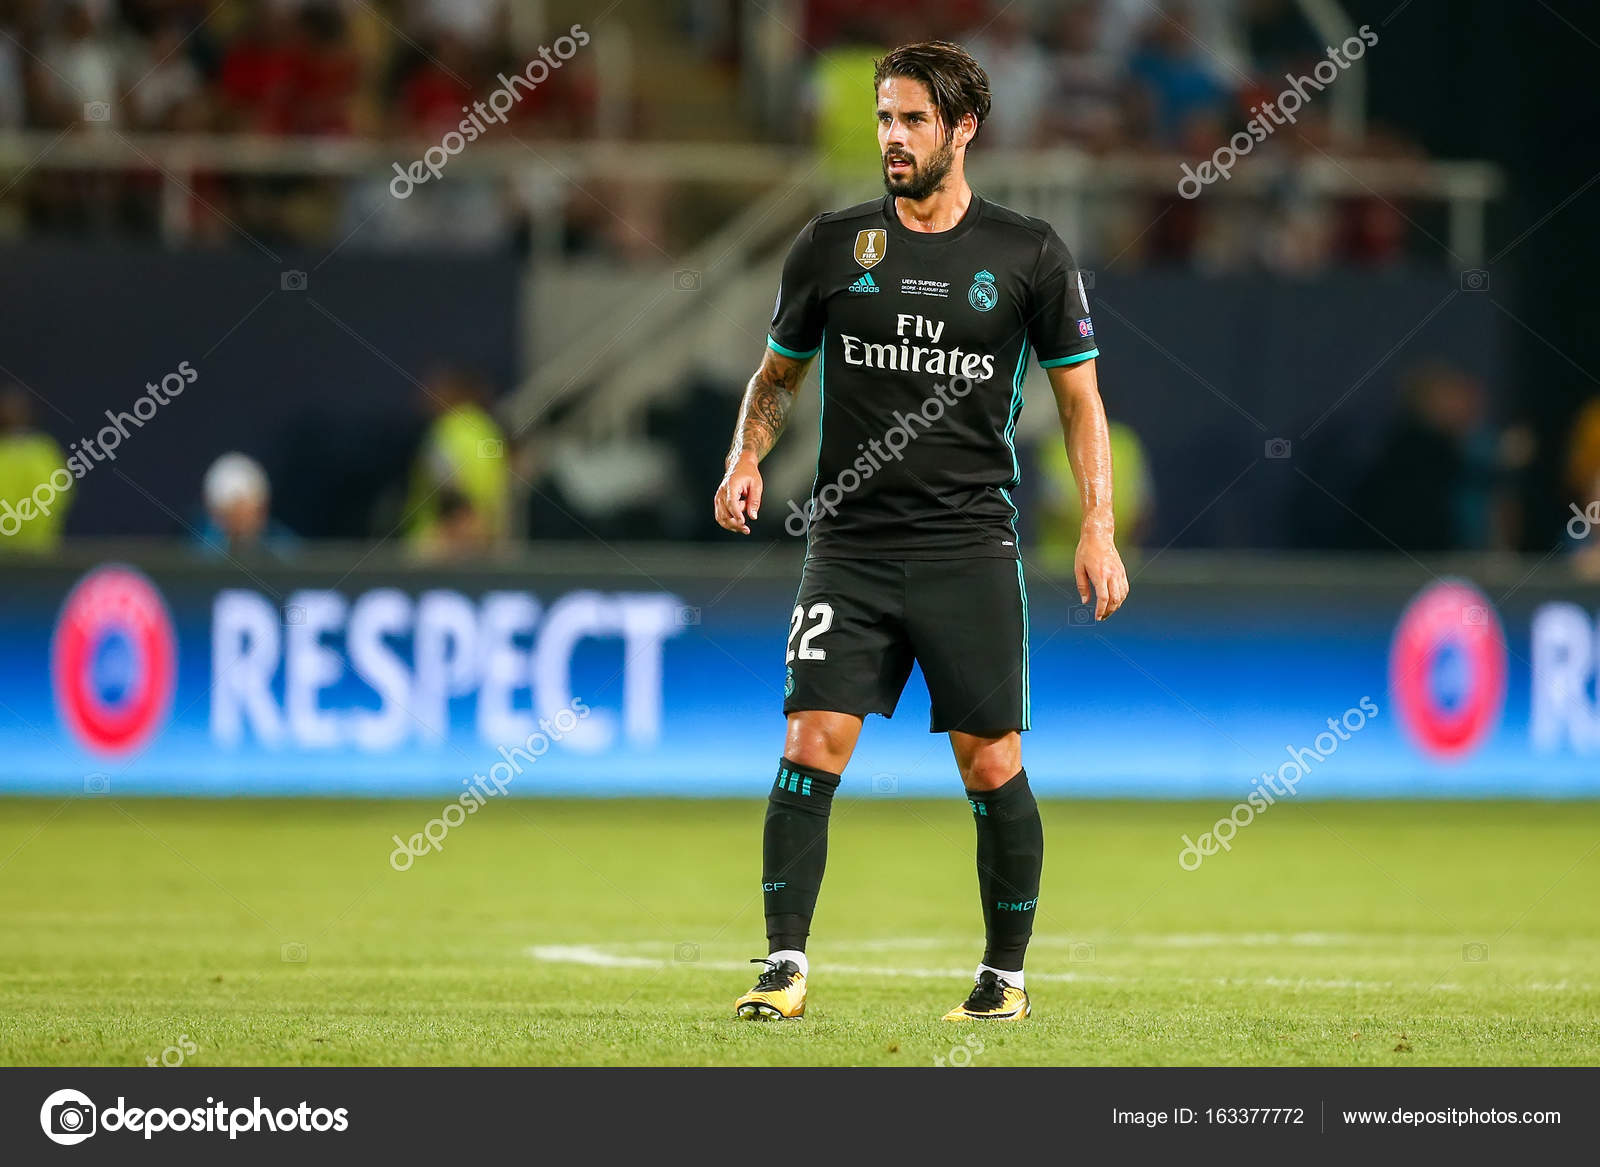 55a30e64a43 REAL MADRID V MANCHESTER UNITED  UEFA SUPER CUP – Stock Editorial ...